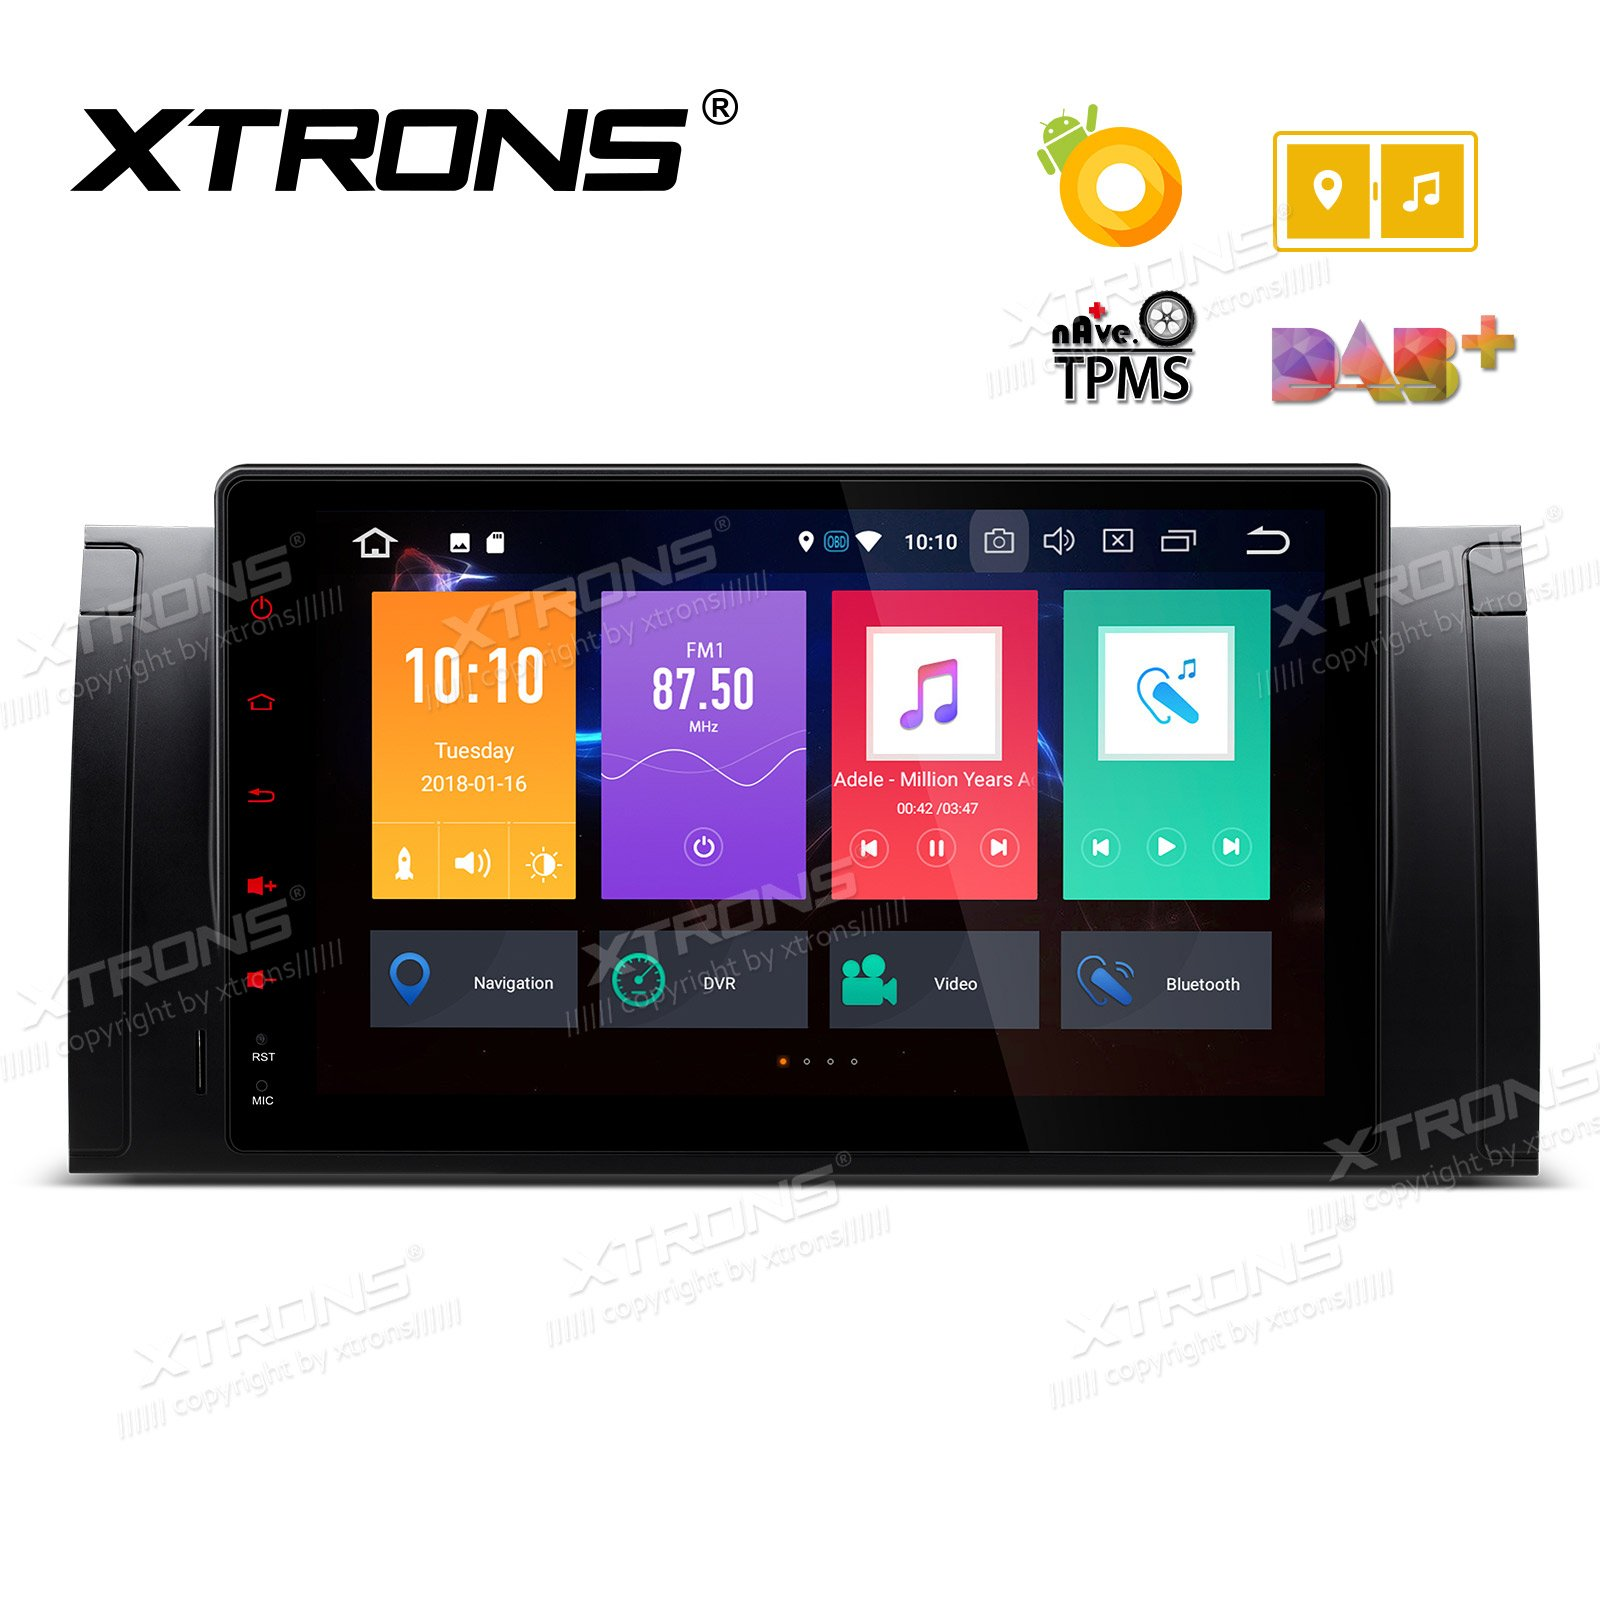 XTRONS 9'' Android 8.0 Octa Core 4G RAM 32G ROM HD Digital Multi-touch Screen OBD2 DVR Car Stereo Player Tire Pressure Monitoring Wifi OBD2 NO-DVD for BMW X5 E53 E39